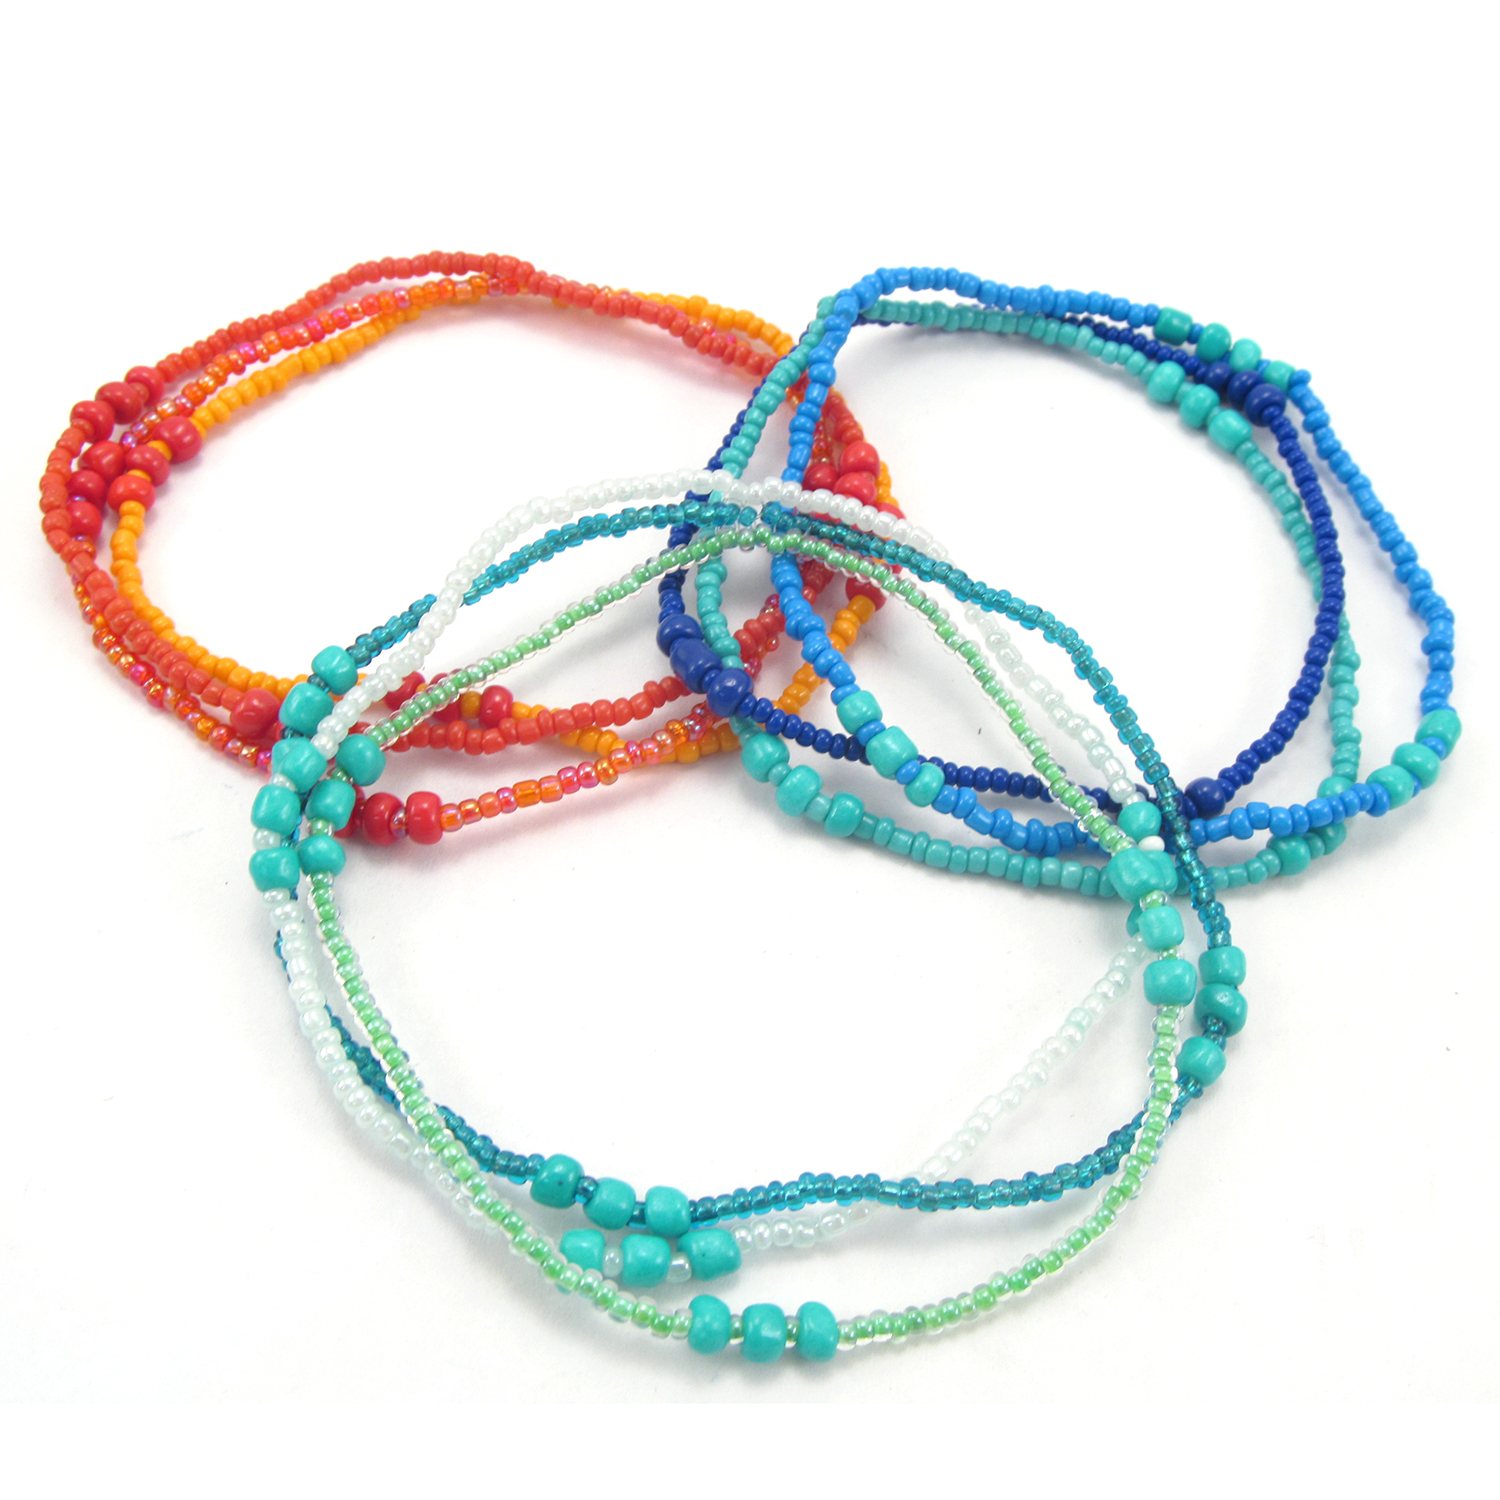 Trio of Hope Anklet in Naranja, Azul, and Verde